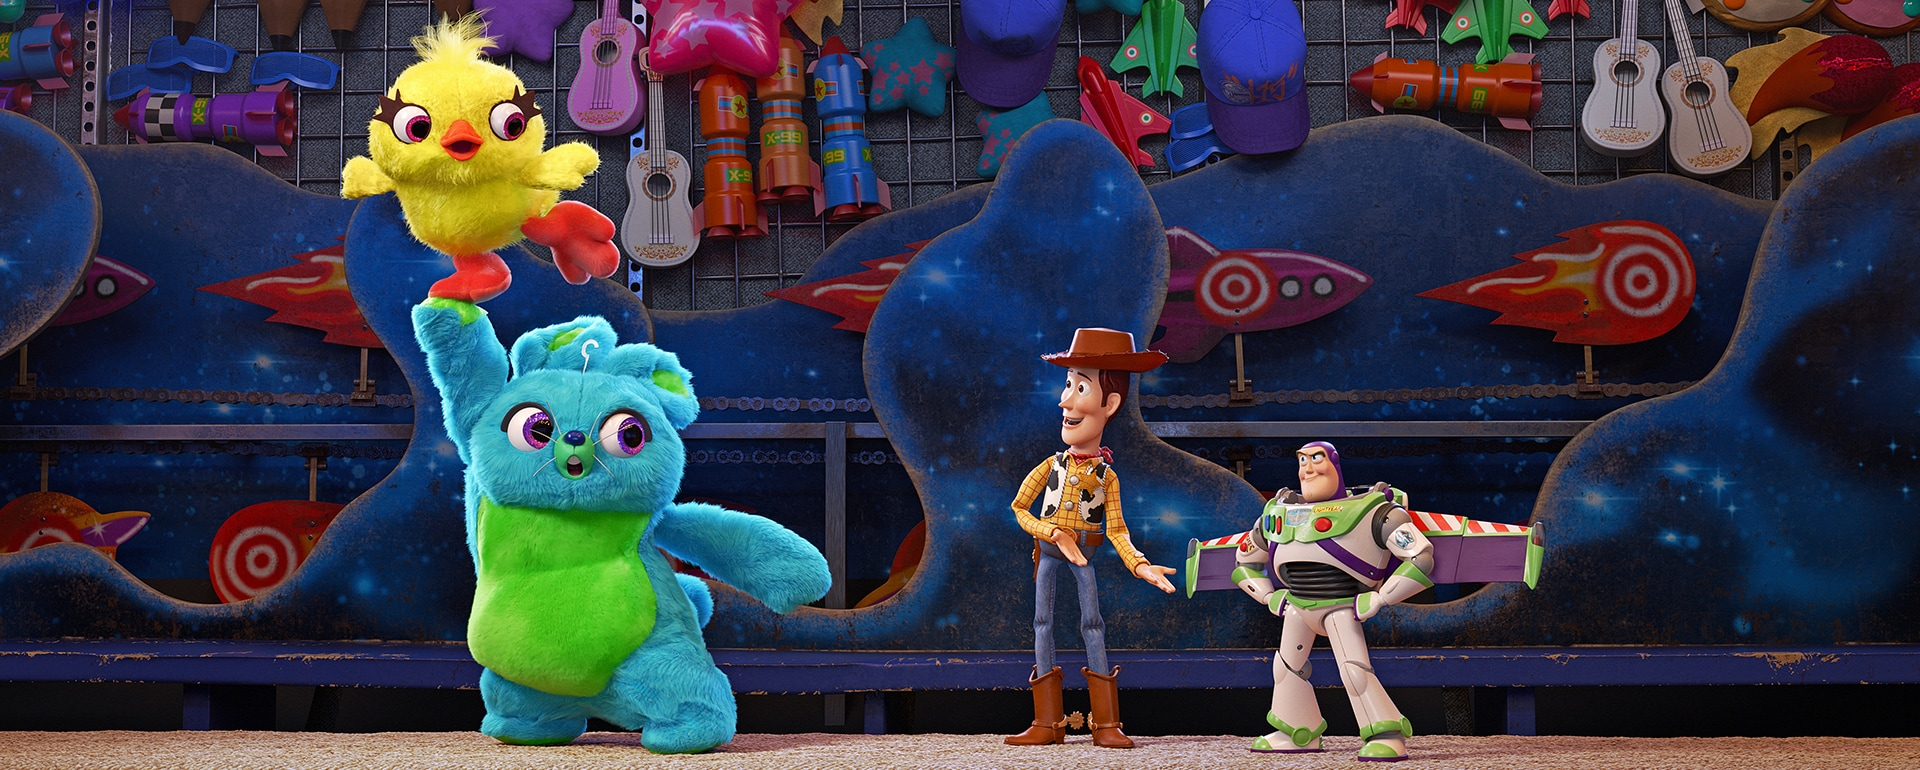 scene from toy story 4 with woody, buzz, ducky, and bunny